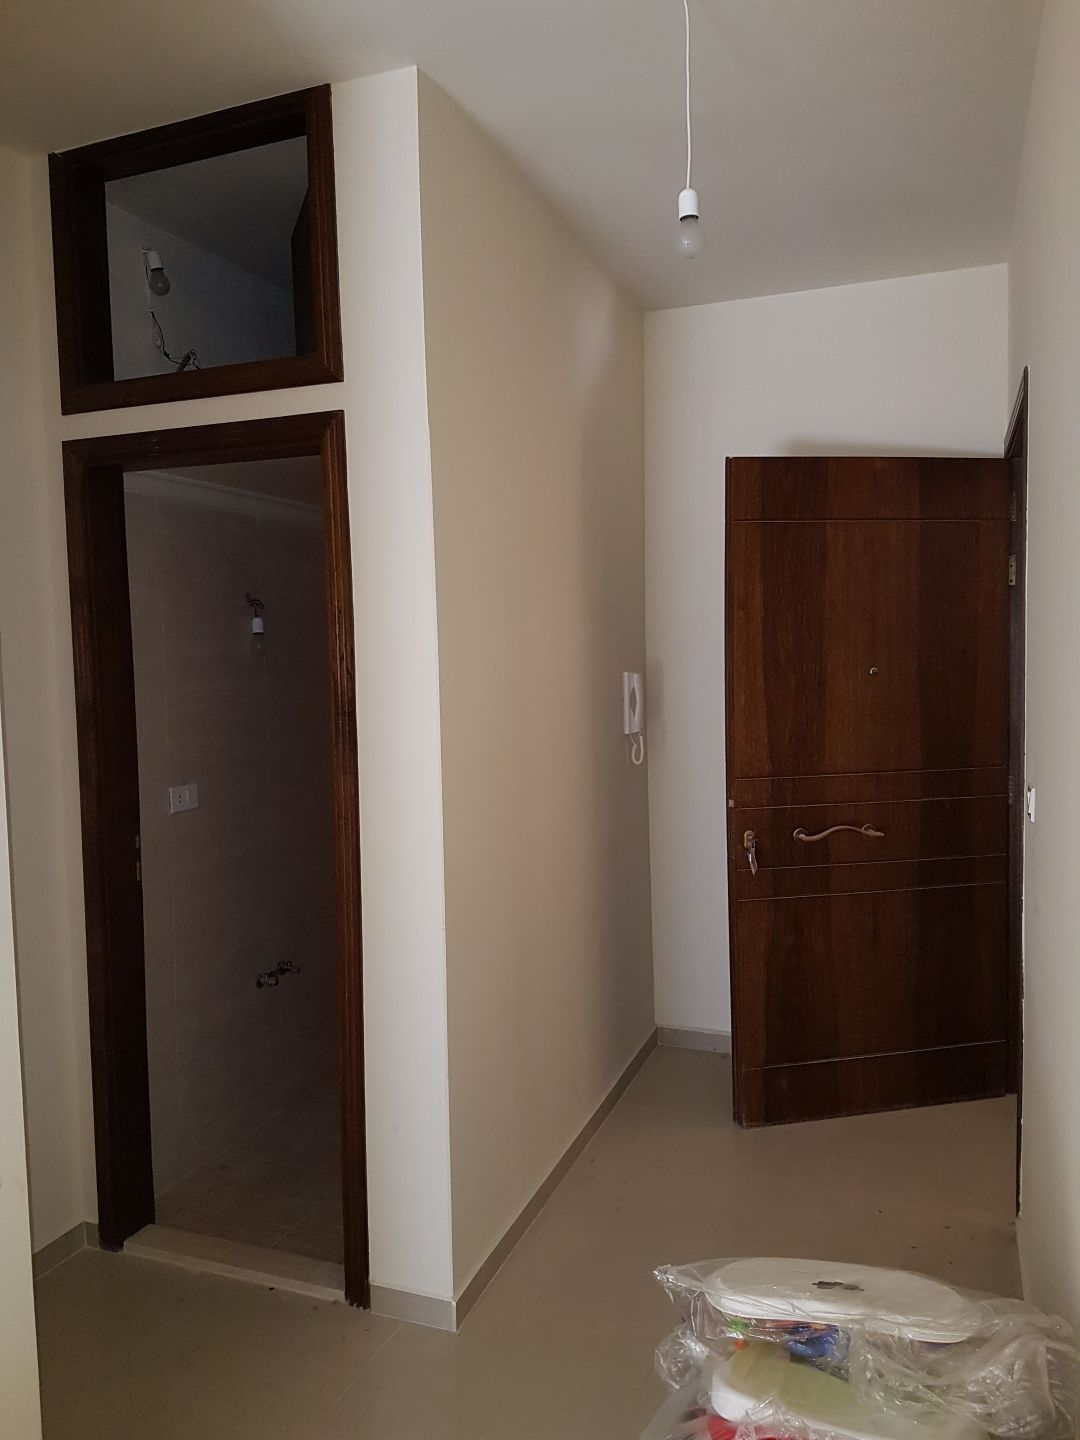 RL-2305 Apartment for Sale in Keserwan , Ghedrass - $ 145,000